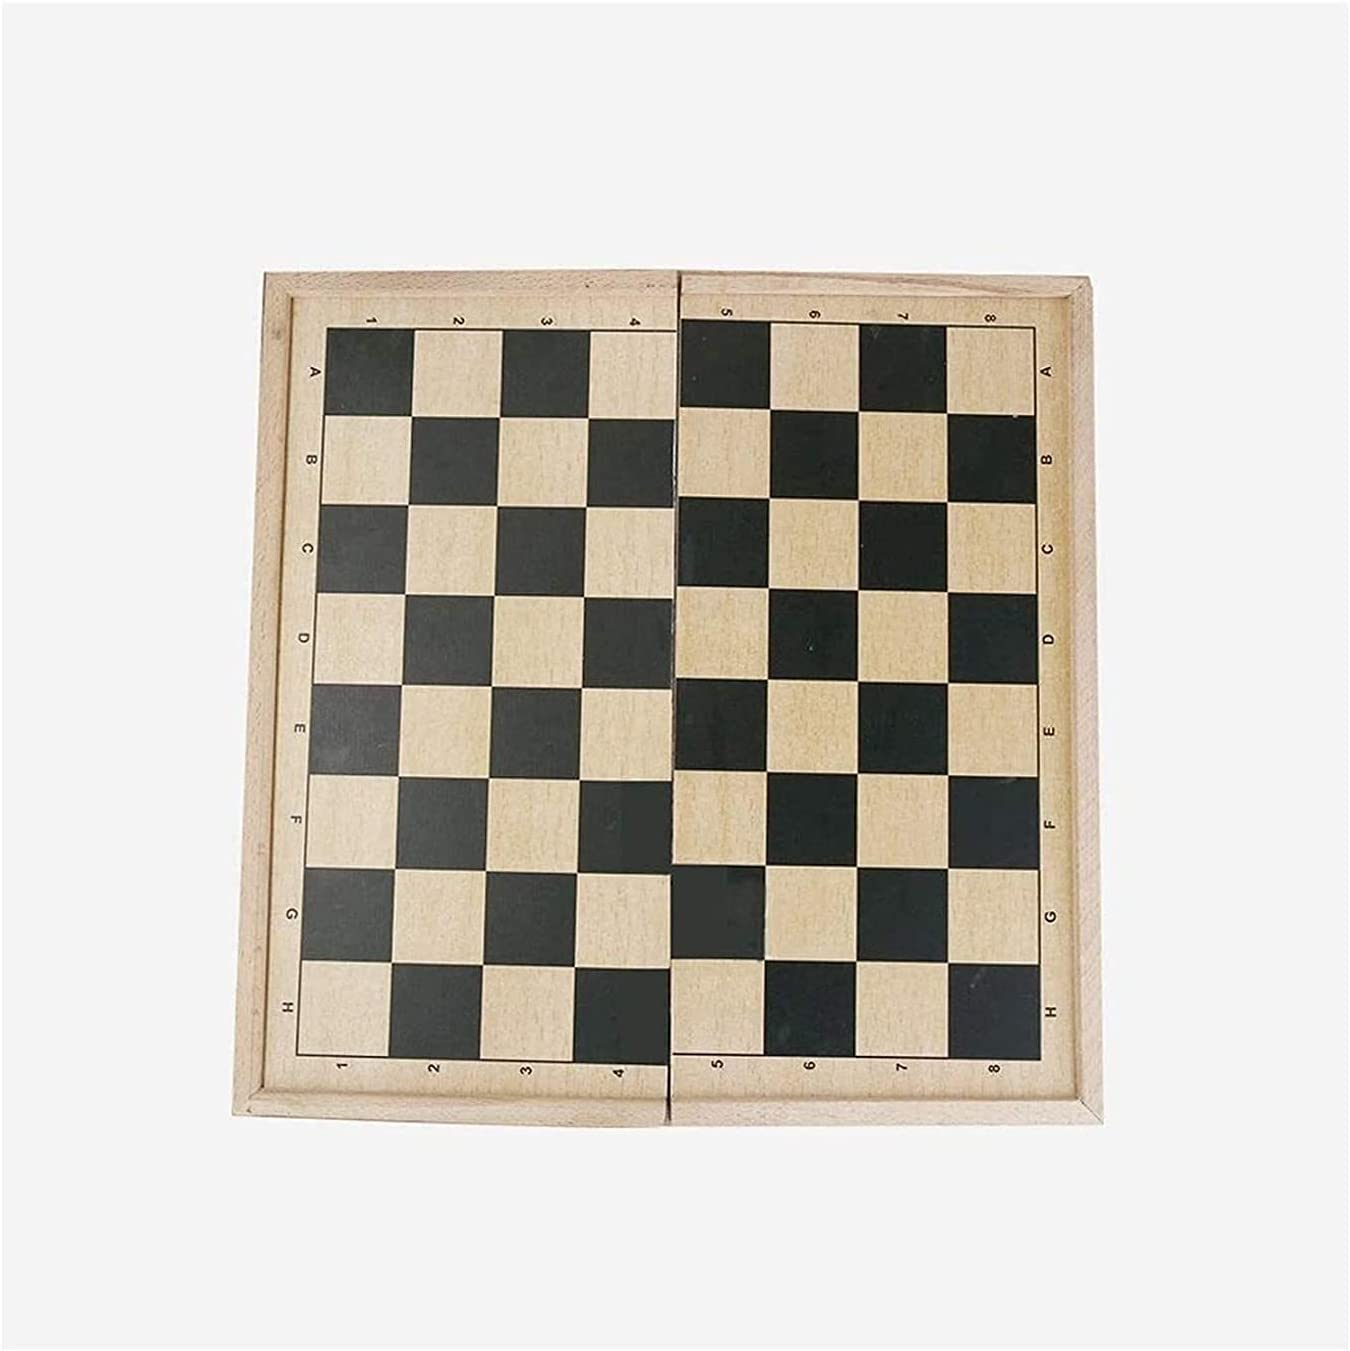 100% quality warranty SDFOOWESD chess board set adults Manufacturer regenerated product for sets